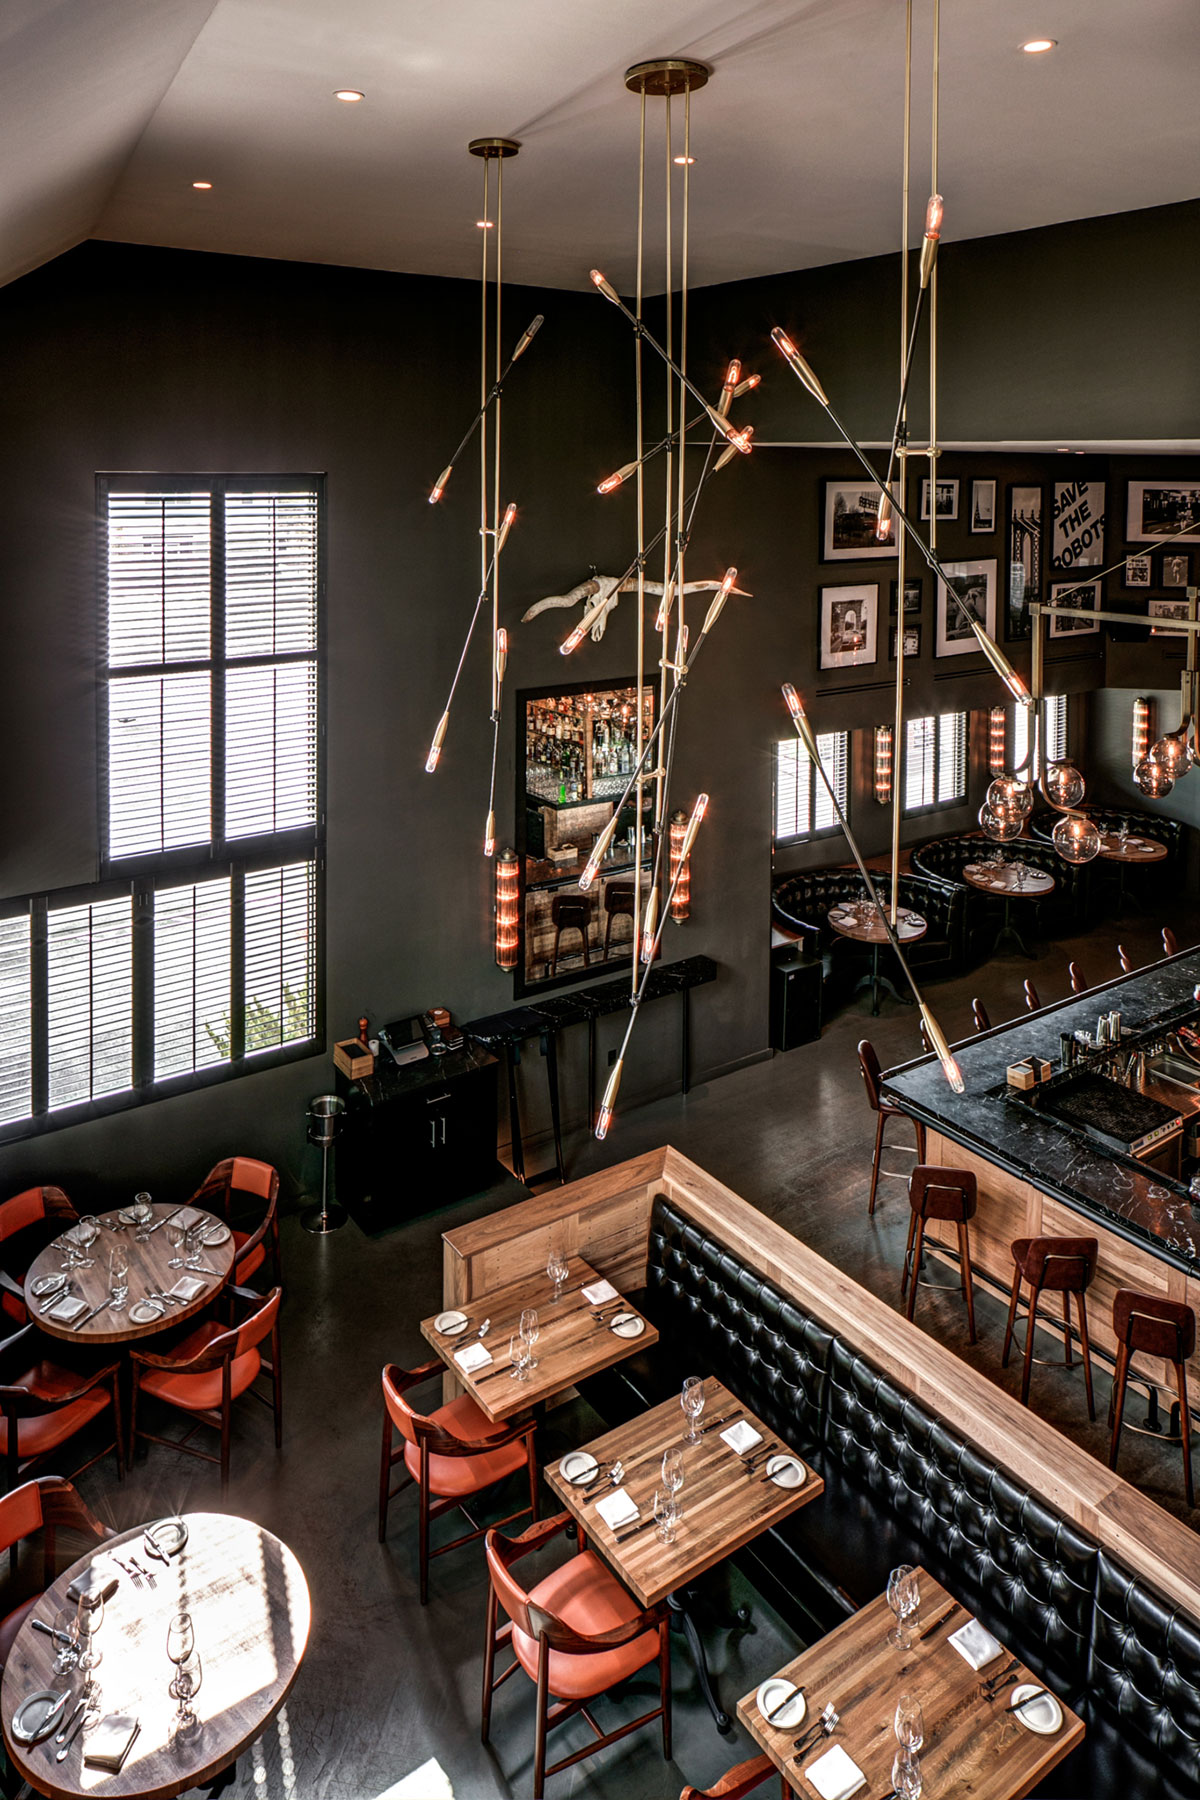 Light fixture of the double height dining area of the American Cut Bar & Grill project located at 495 Sylvan Avenue in Englewood Cliffs, New Jersey designed by the architecture studio Danny Forster & Architecture